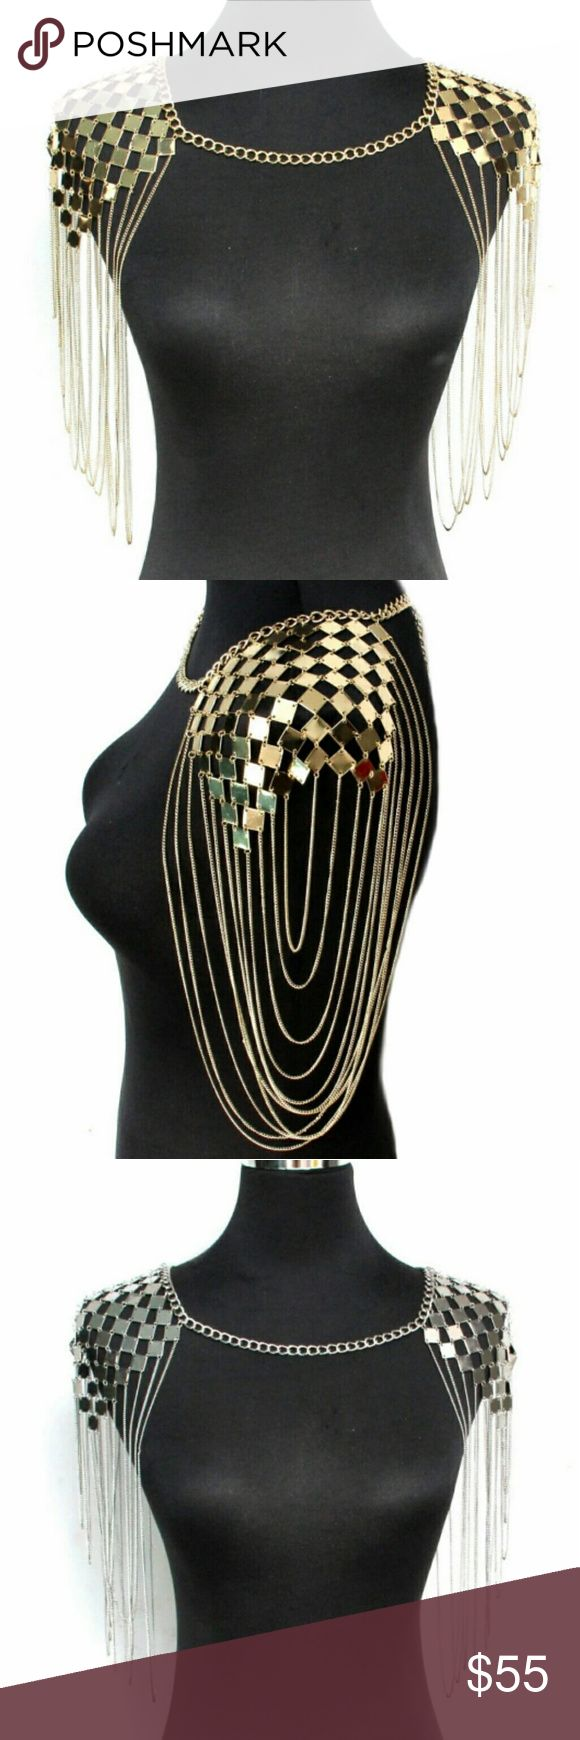 Bikini, Body Chain, Epaulet, Shoulder Chain Fashionable match for Bikini and dress. Hot choice for a summer beach party, Coachella, festival, bohemian, punk, burning man, rave costume or prom and any other occasion. This Harness Body Chain put a glamorous finishing touch on whatever you're wearing to have you sparkling and shining the day or night away! Sure to add it to any dress, swimsuit or separates ensemble. Expressed the true sexy side in your soul and bring a sparkle to your every…